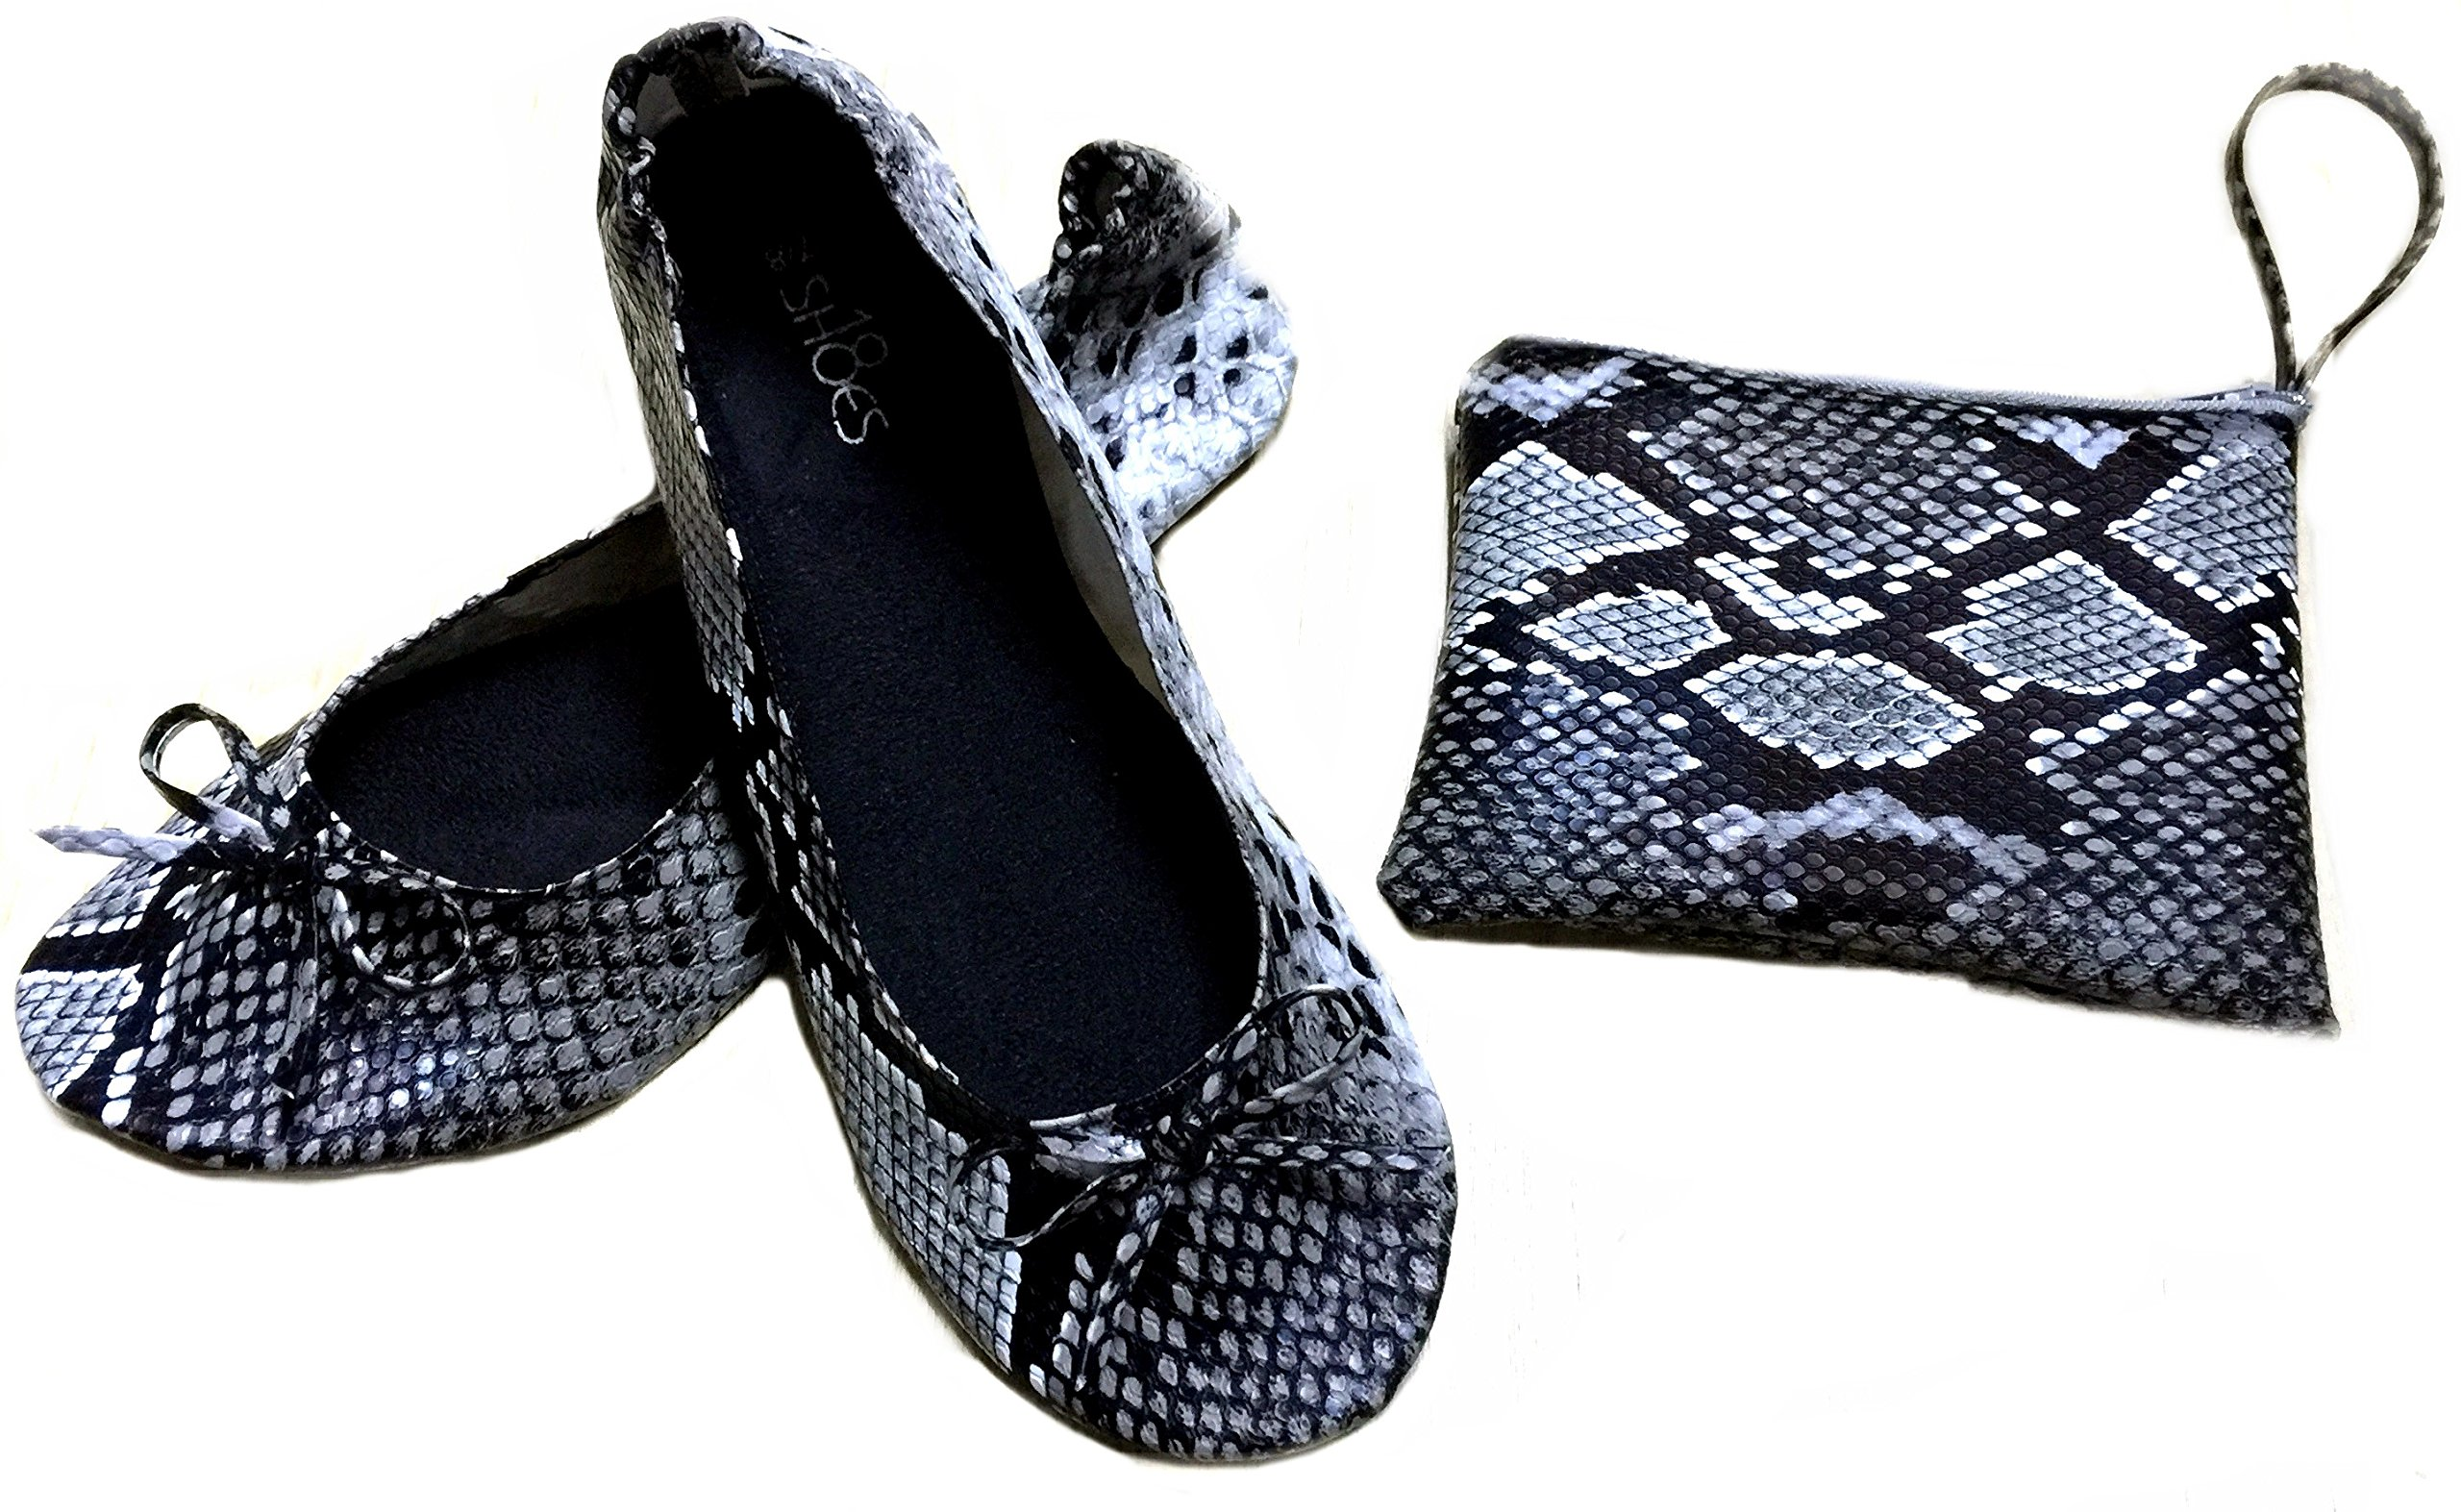 Shoes 18 Women's Foldable Portable Travel Ballet Flat Shoes w/ Matching Carrying Case (9/10 B(M) US, Snake Black)